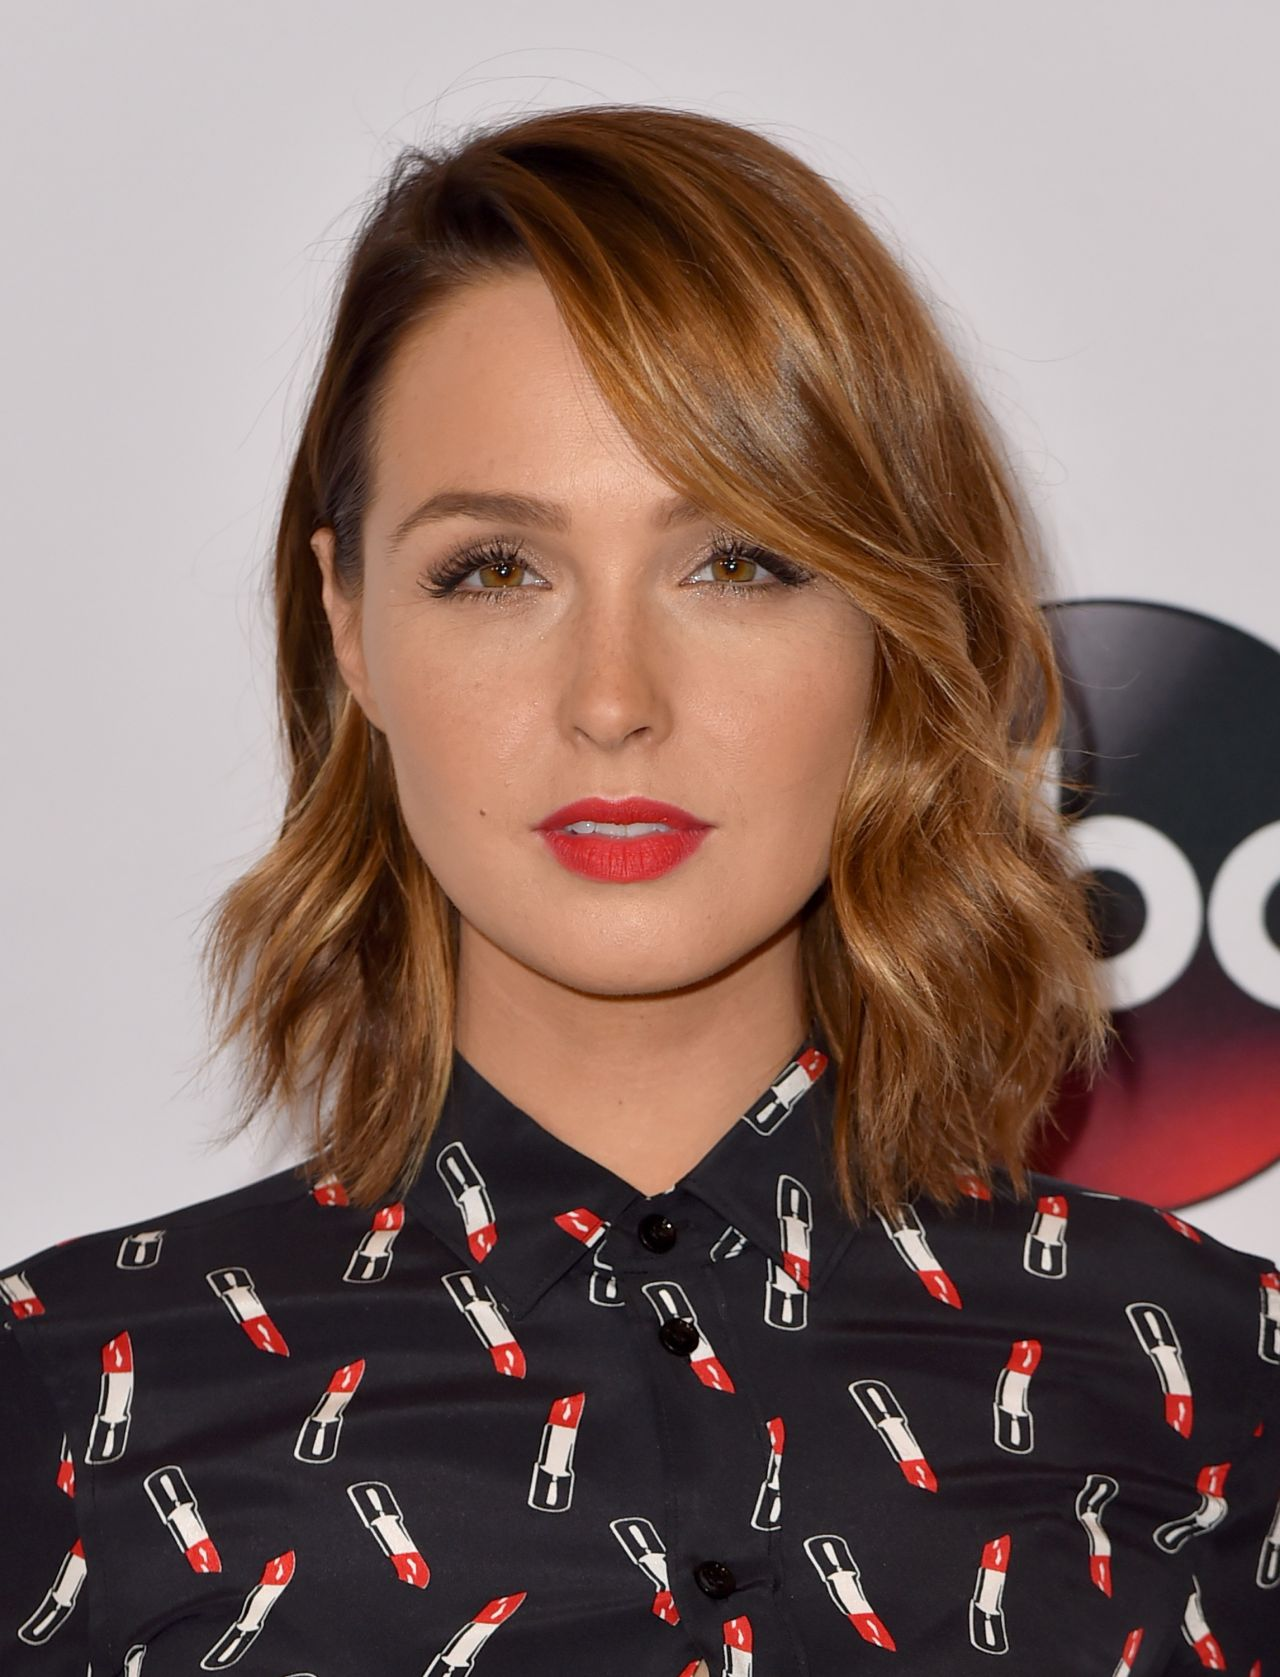 camilla-luddington-disney-abc-2015-summer-tca-press-tour-photo-call-in-beverly-hills_4